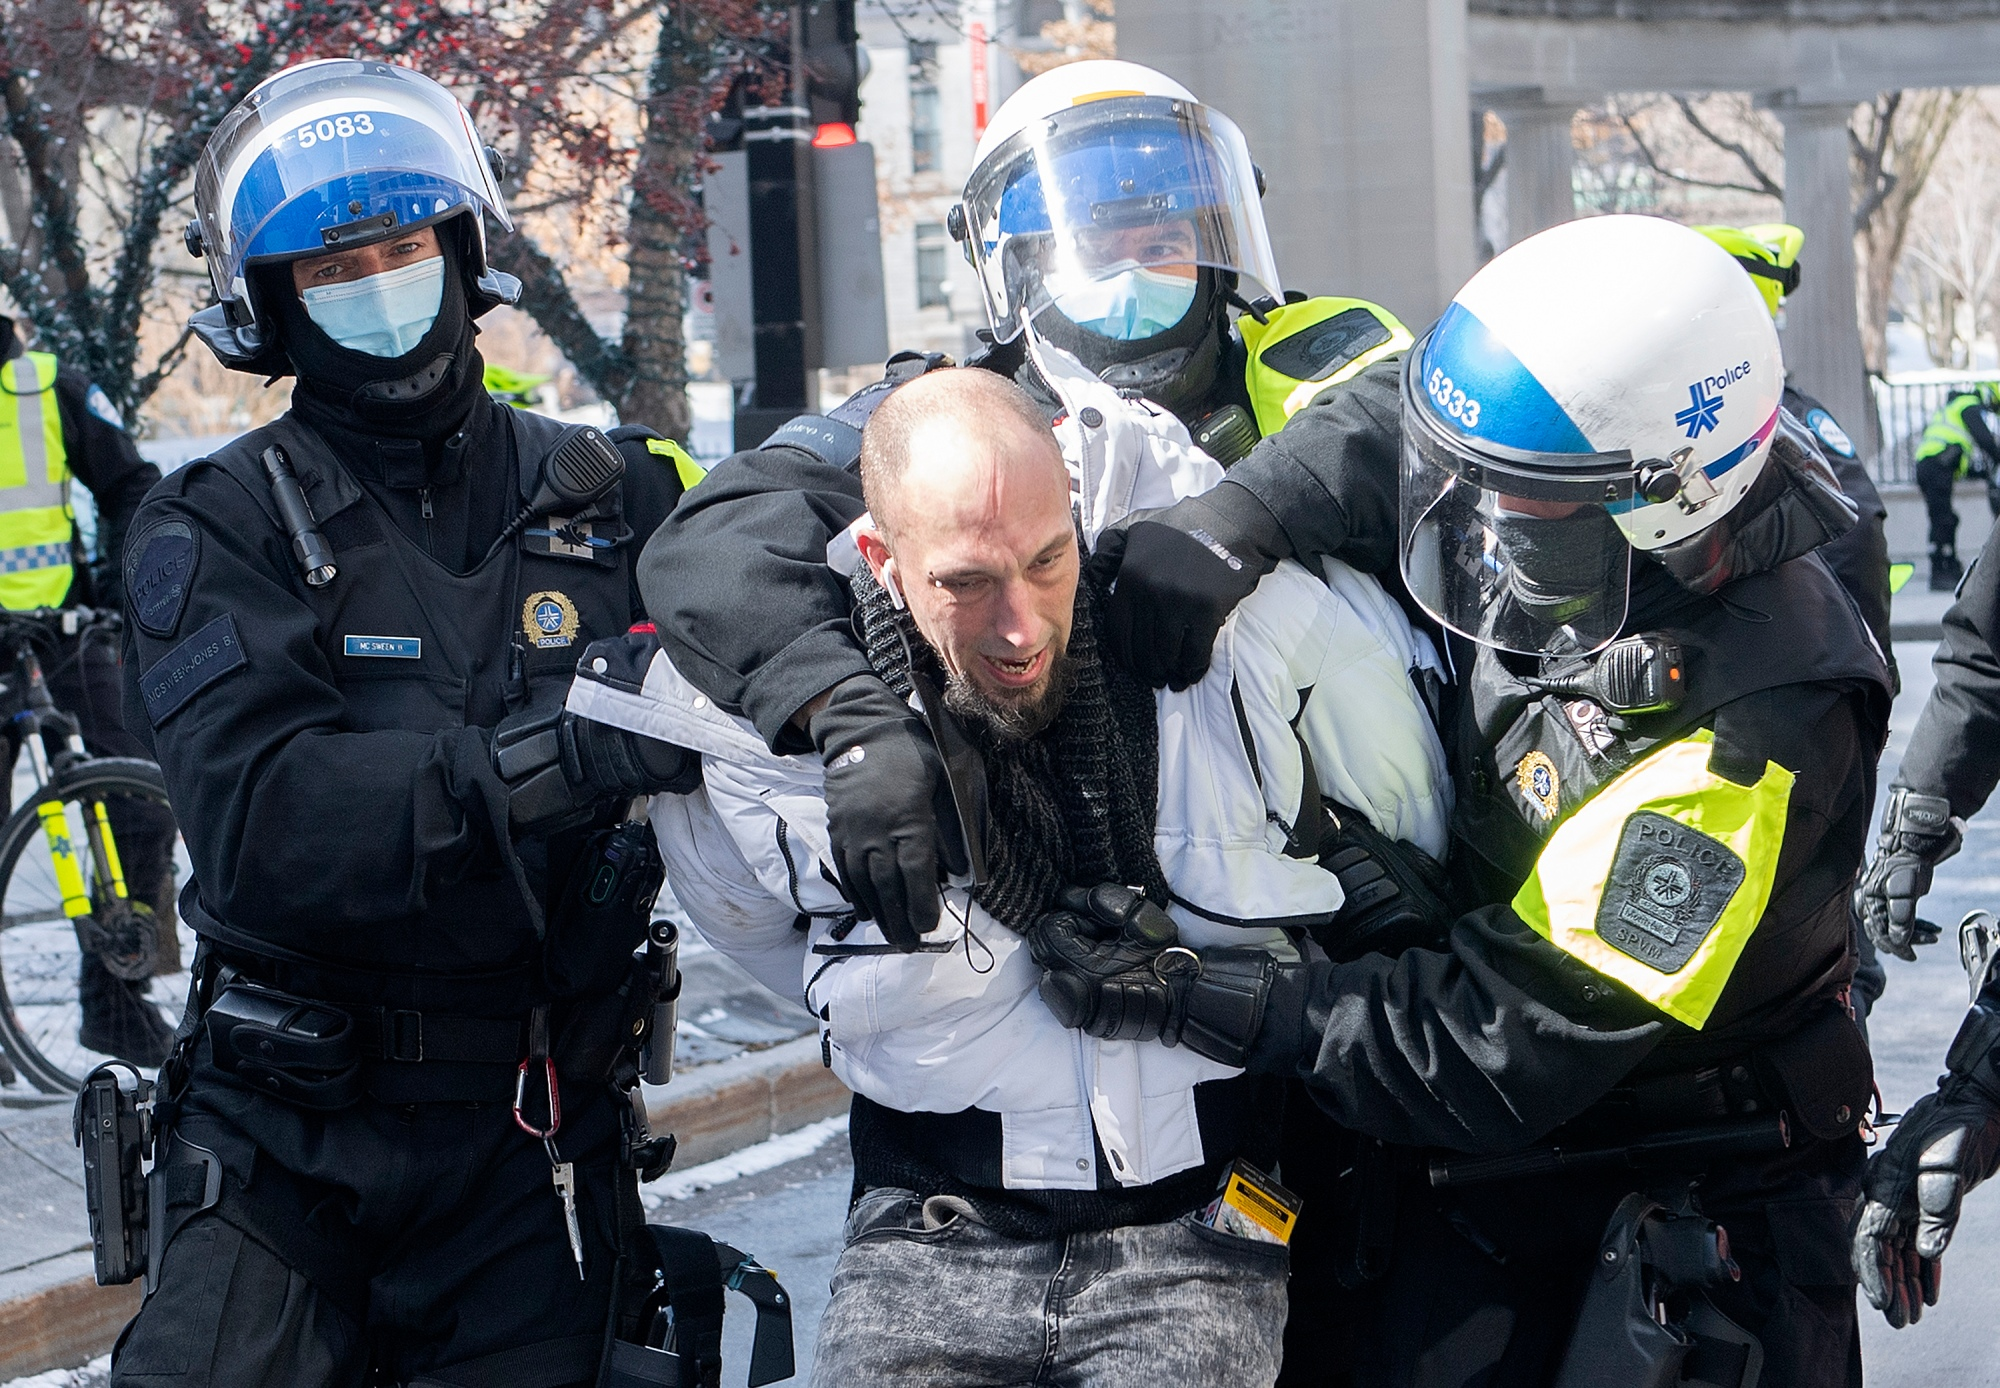 A man is detained by police during a demonstration to oppose government restrictions to curb the spread of Covid-19 in Montreal, Saturday, March 13, 2021.